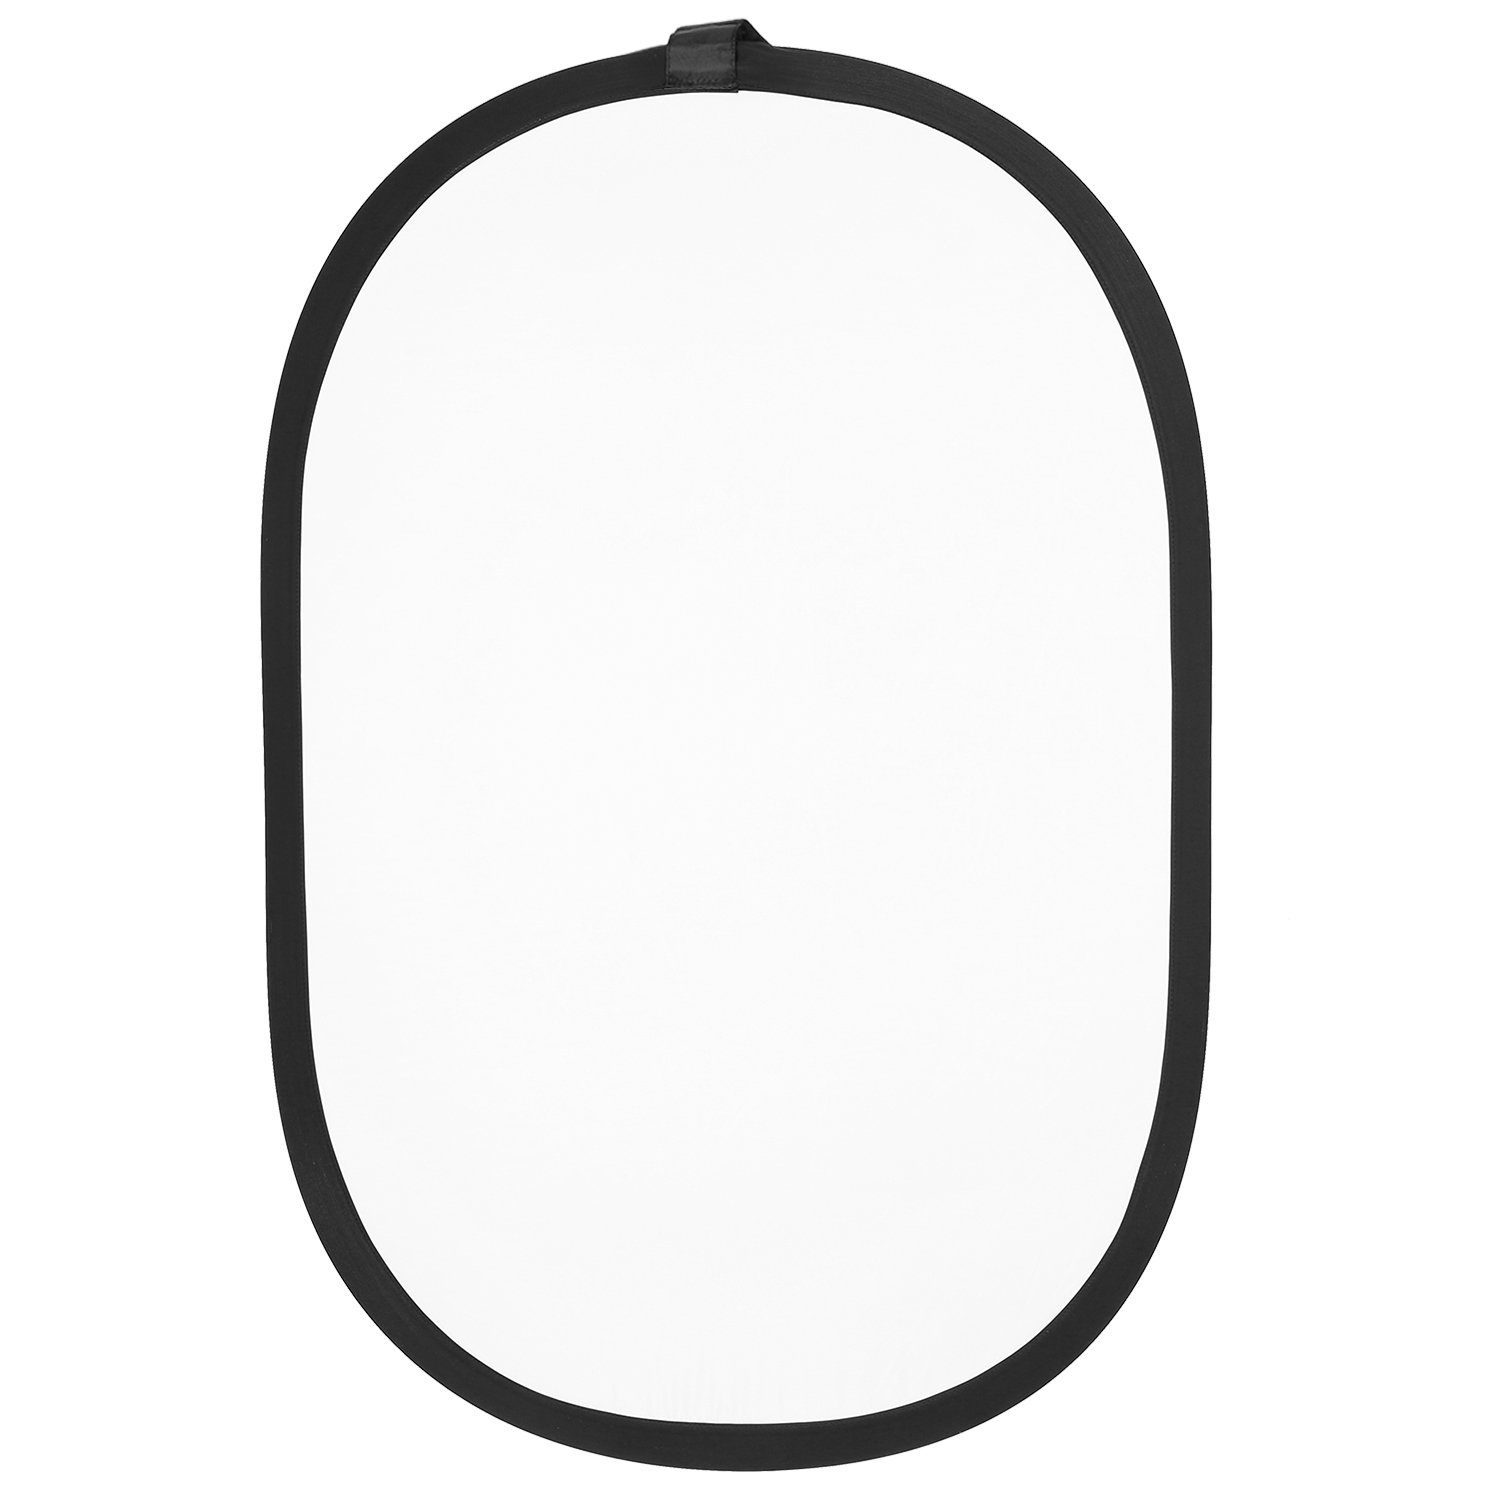 Neewer Photography Studio Lighting Reflector Pop-out Foldable Soft Diffuser Disc Panel with Carrying Case for Studio and Outdoor Portrait, Product Photography,Video Shooting (23.6 x 35.4 inches) by Neewer